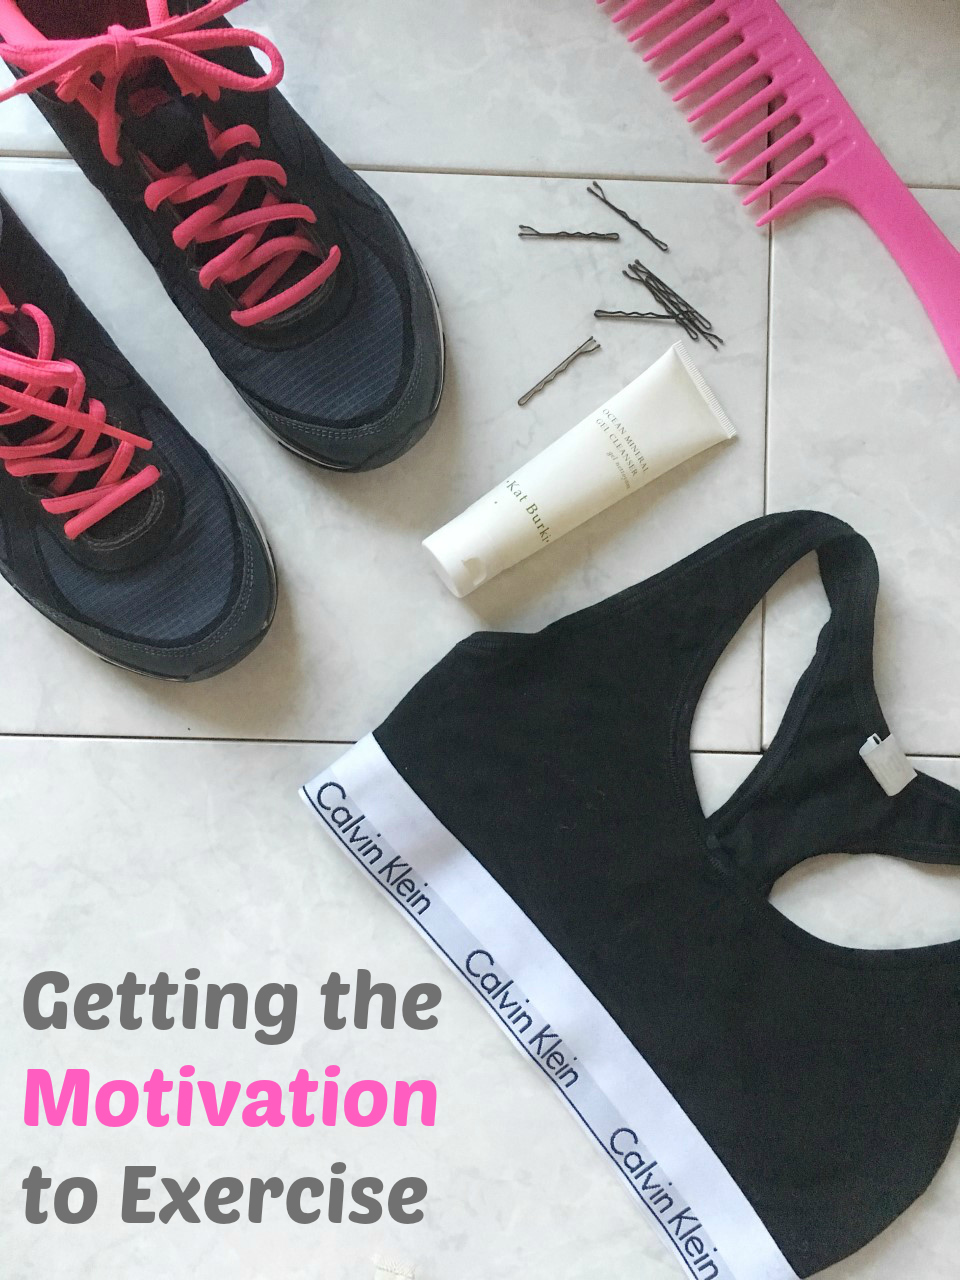 How to Get the Motivation to Exercise